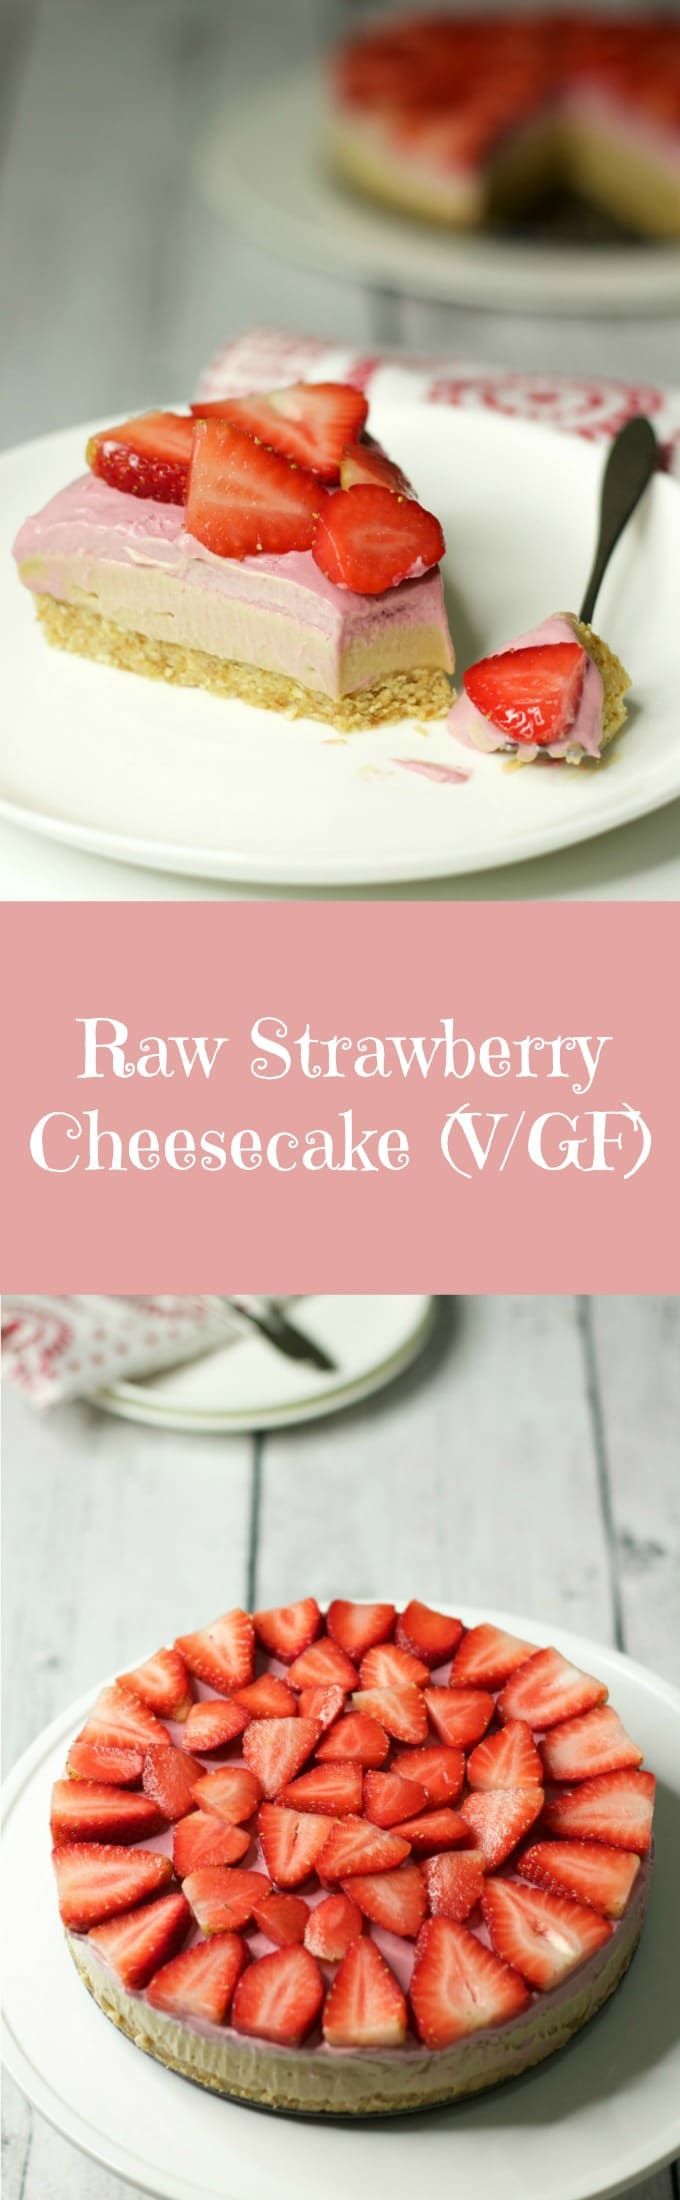 Raw Strawberry Cheesecake #vegan #rawvegan #dairy-free #gluten-free